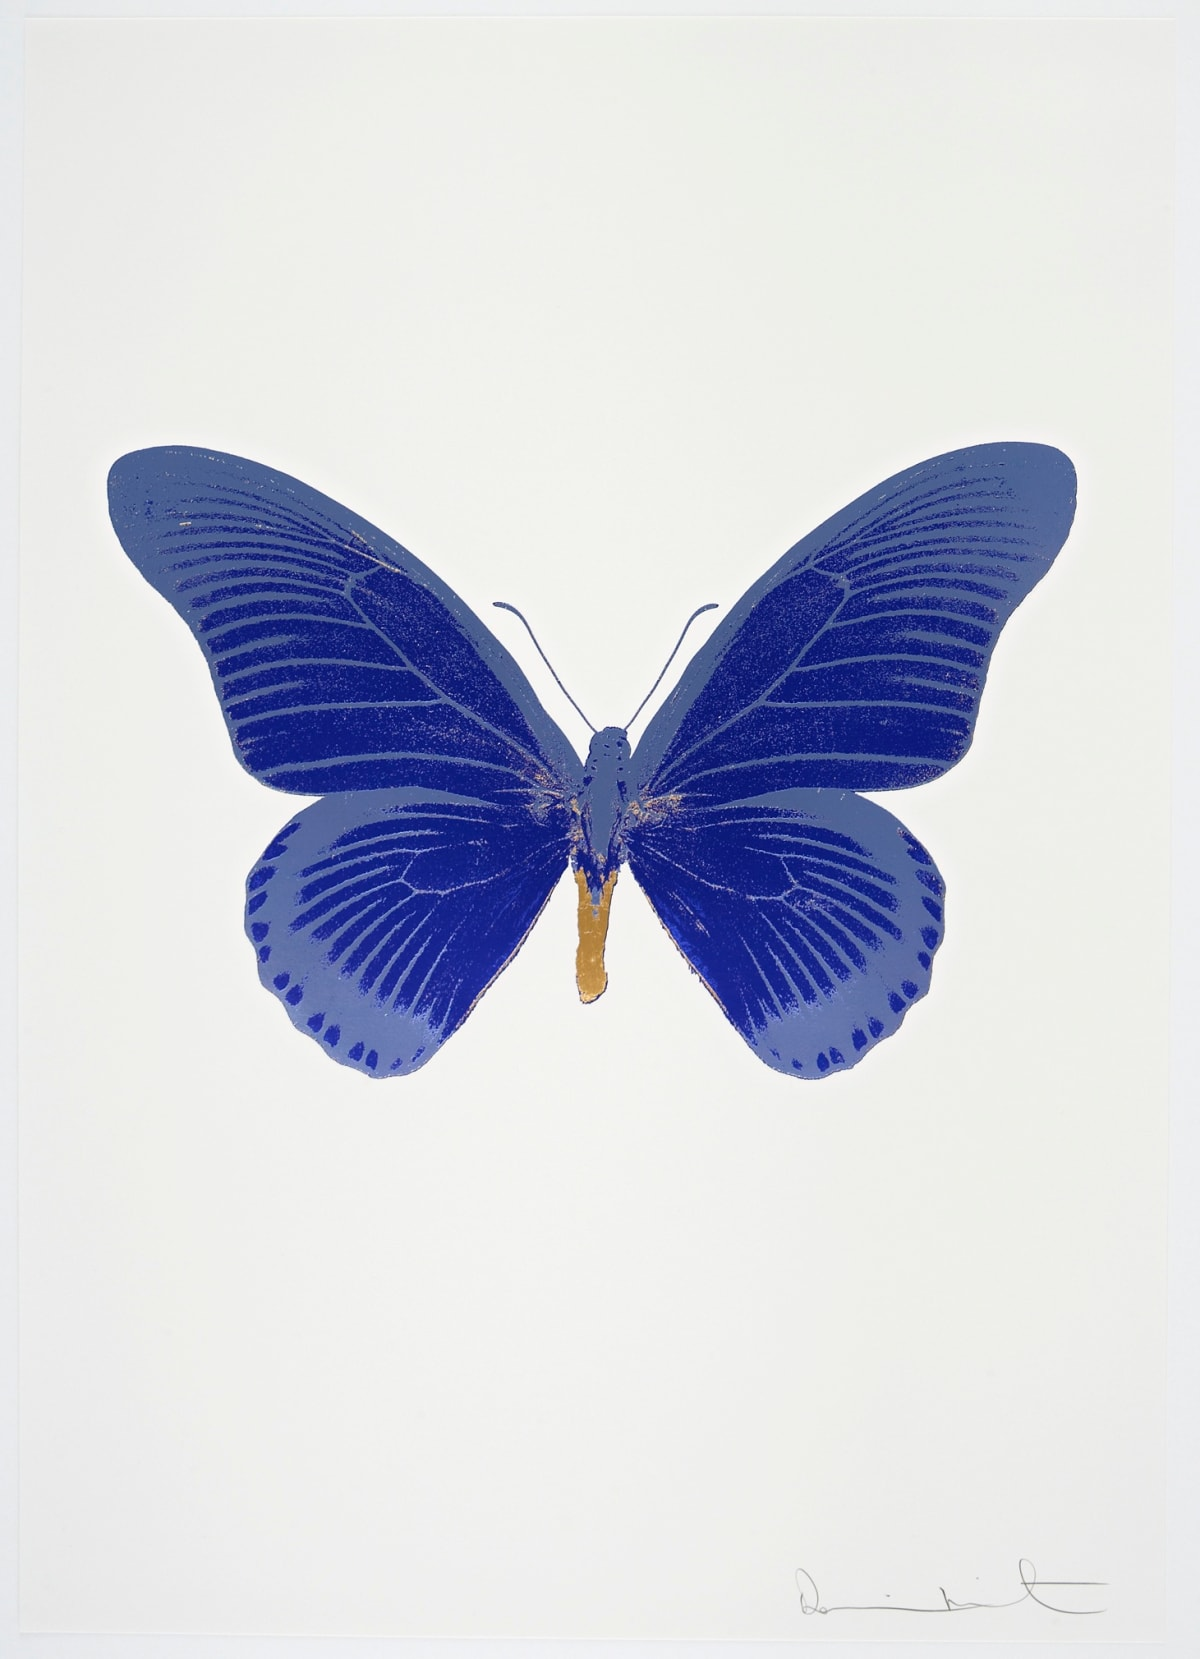 Damien Hirst The Souls IV - Westminster Blue/Cornflower Blue/African Gold Damien Hirst butterfly foil print for sale Damien Hirst print for sale , 2010 3 colour foil block on 300gsm Arches 88 archival paper. Signed and numbered. Published by Paul Stolper and Other Criteria 72 x 51cm OC8025 / 1418-48 Edition of 15